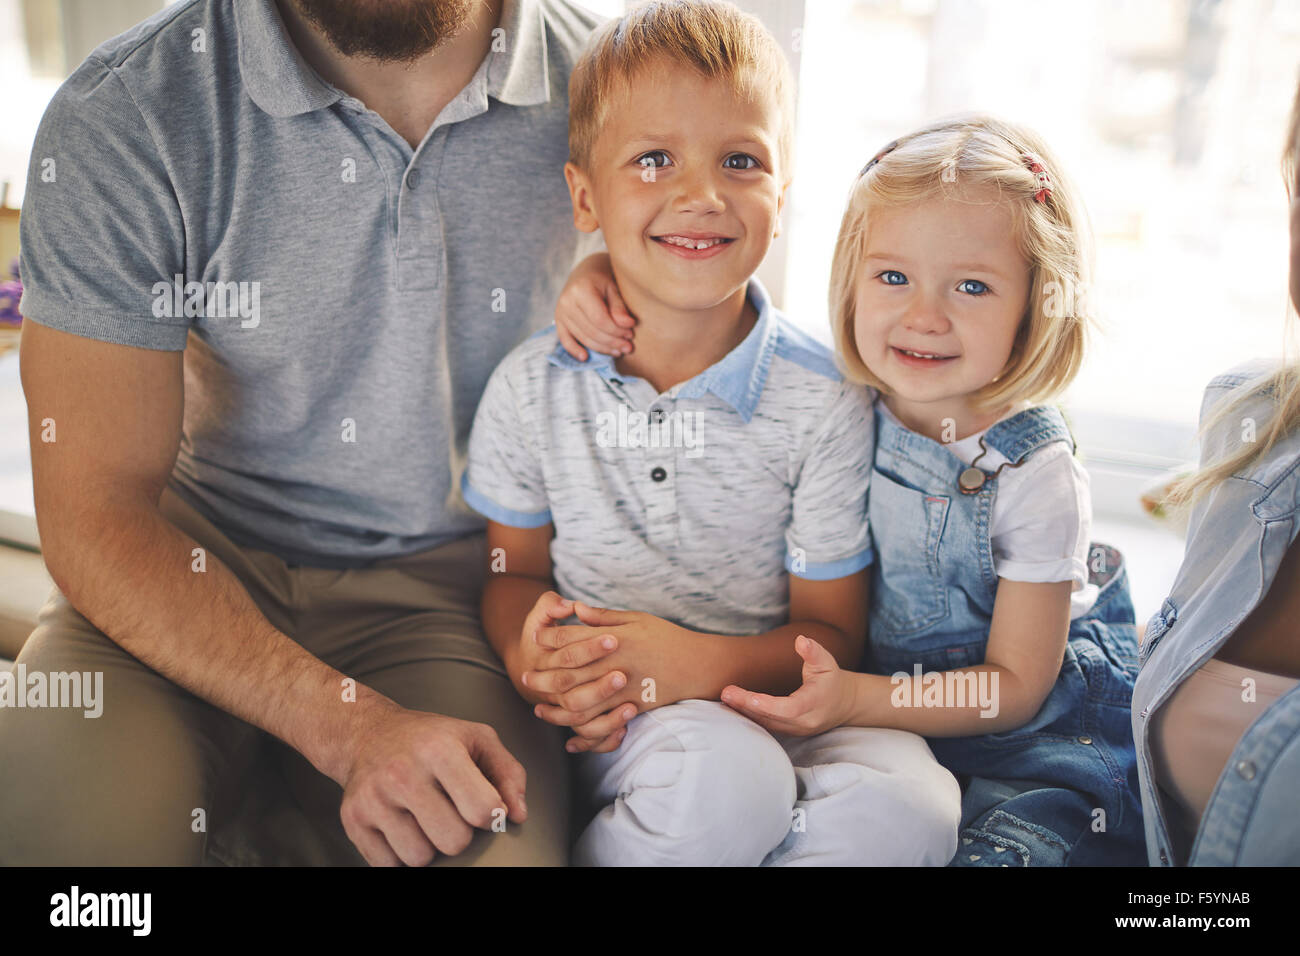 Adorable siblings looking at camera with smiles - Stock Image